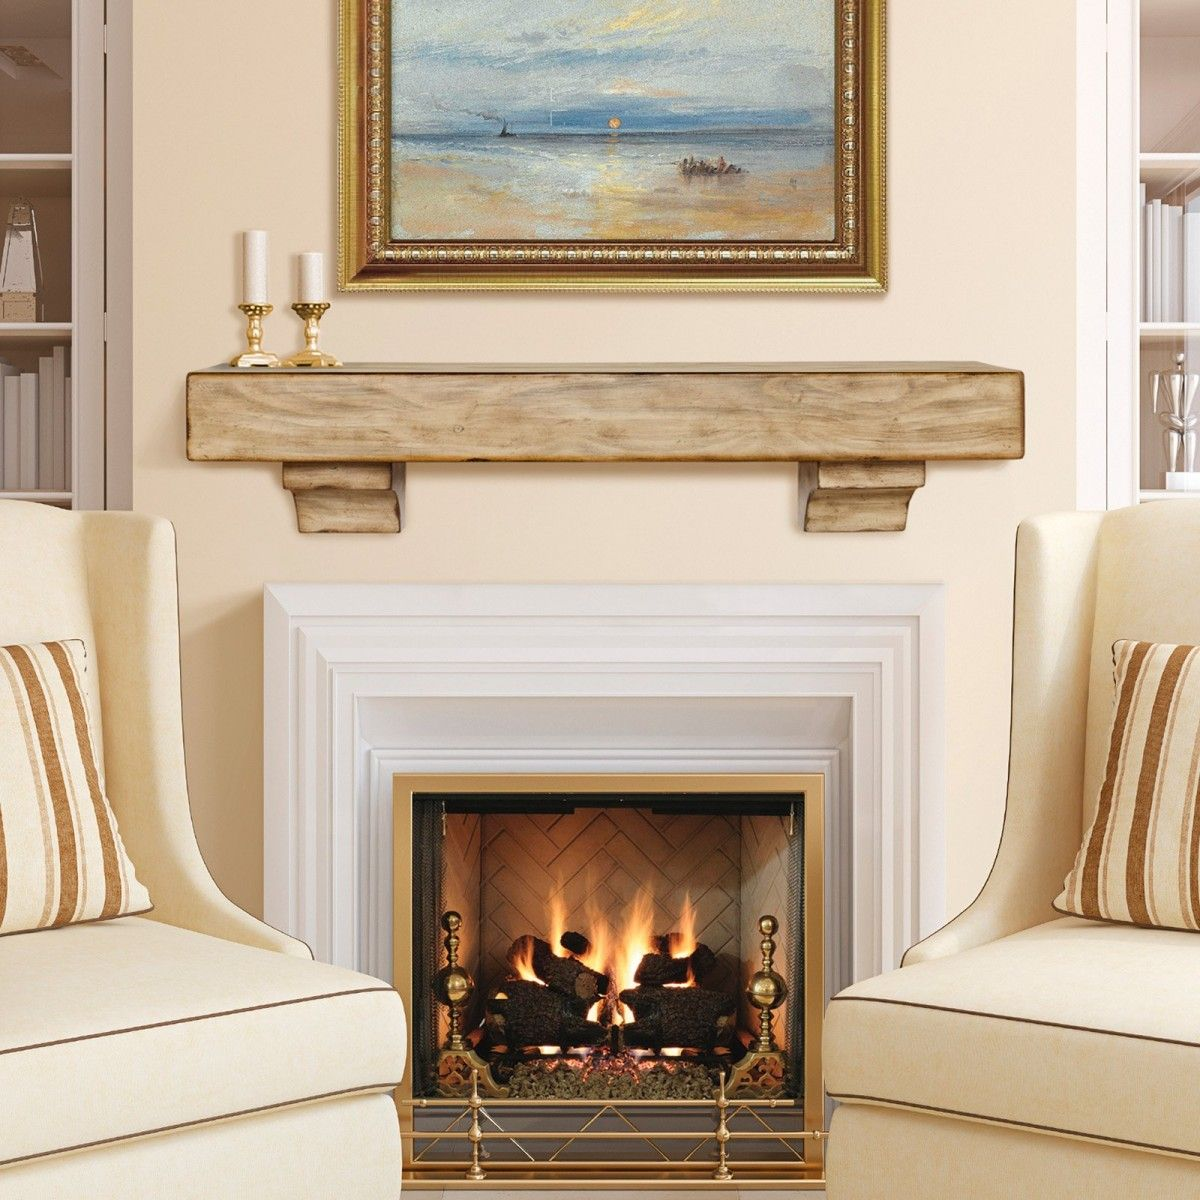 Simple and sophisticated fireplace mantel ideas - Fireplace mantel designs in simple and sophisticated style ...